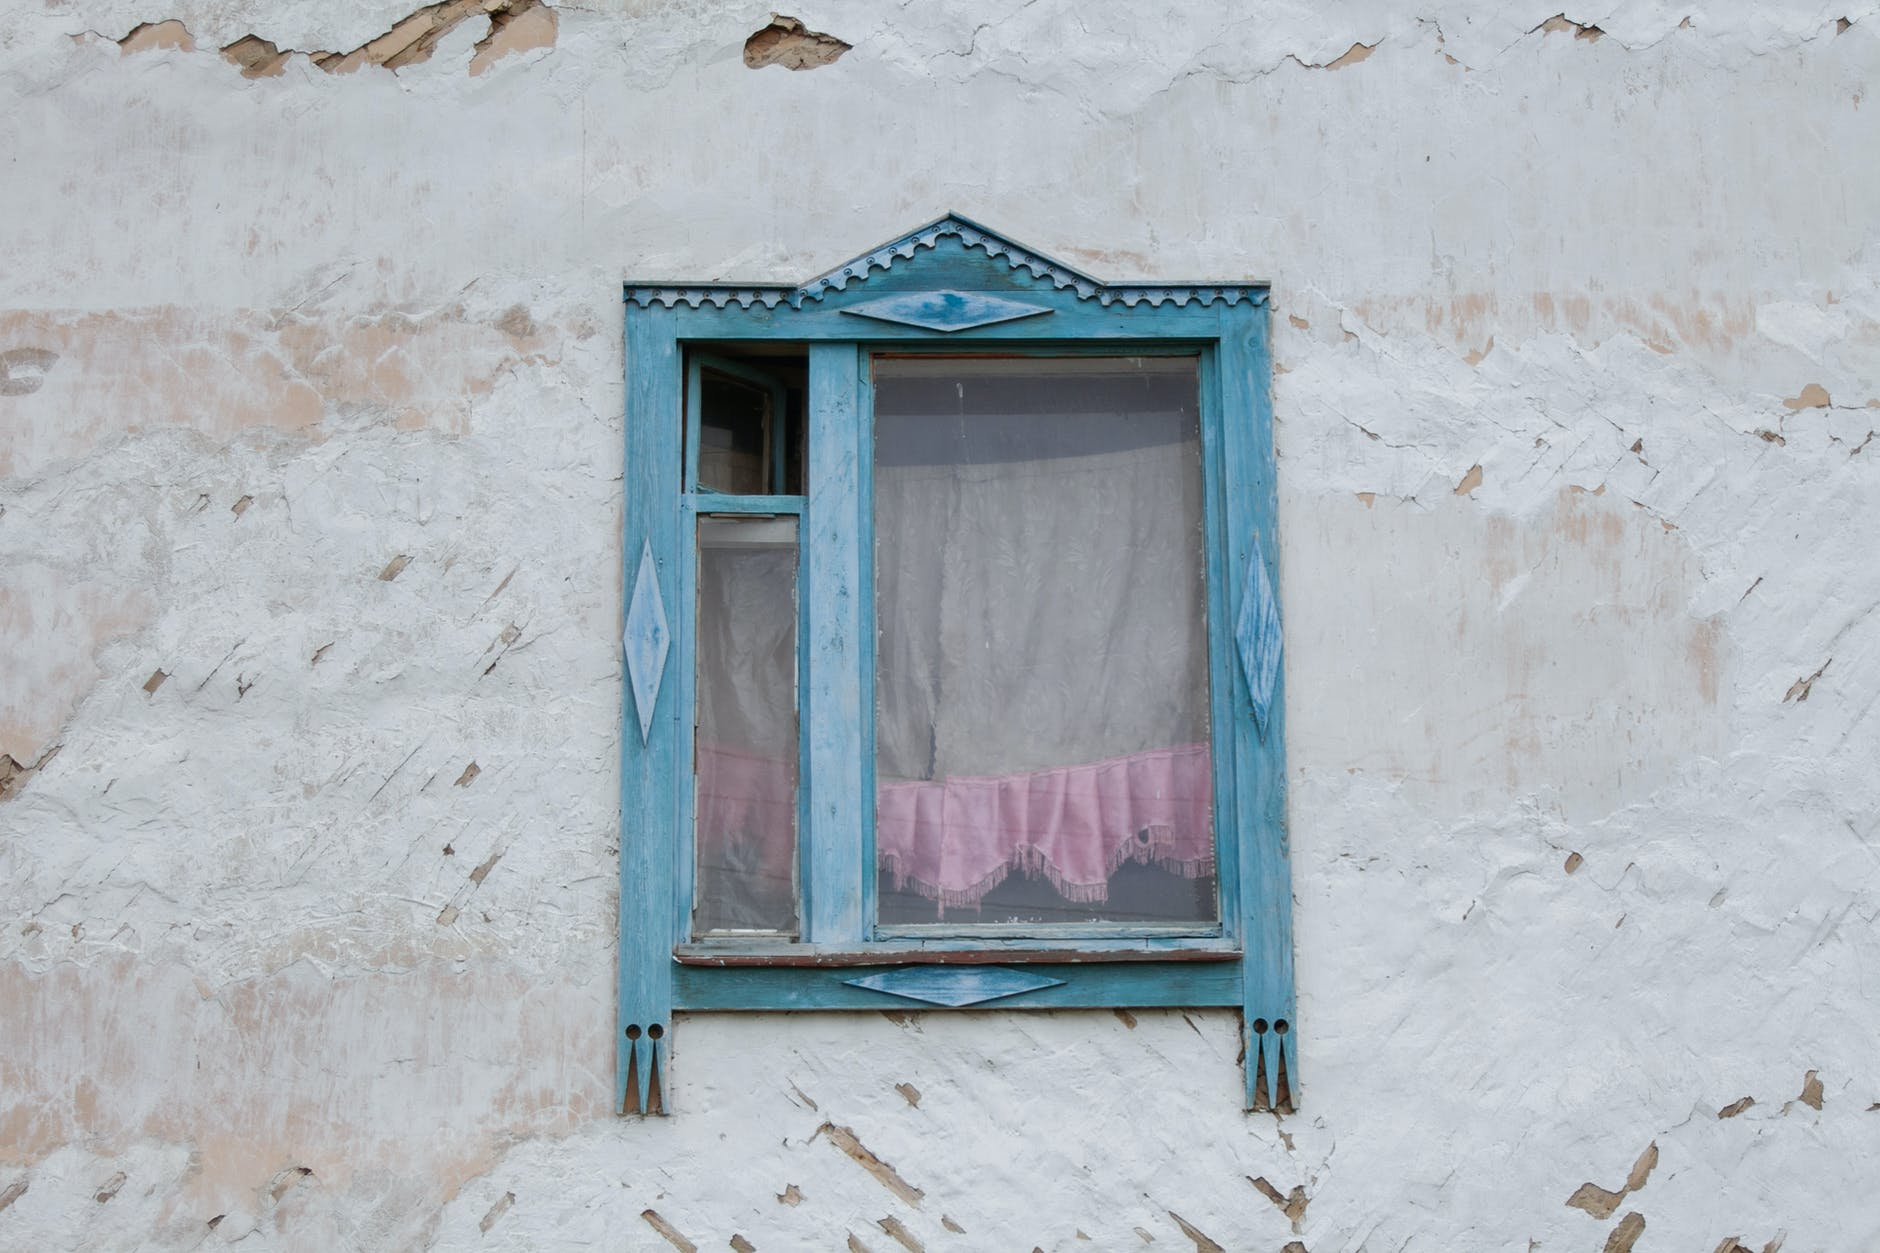 wooden window of weathered rustic house in village